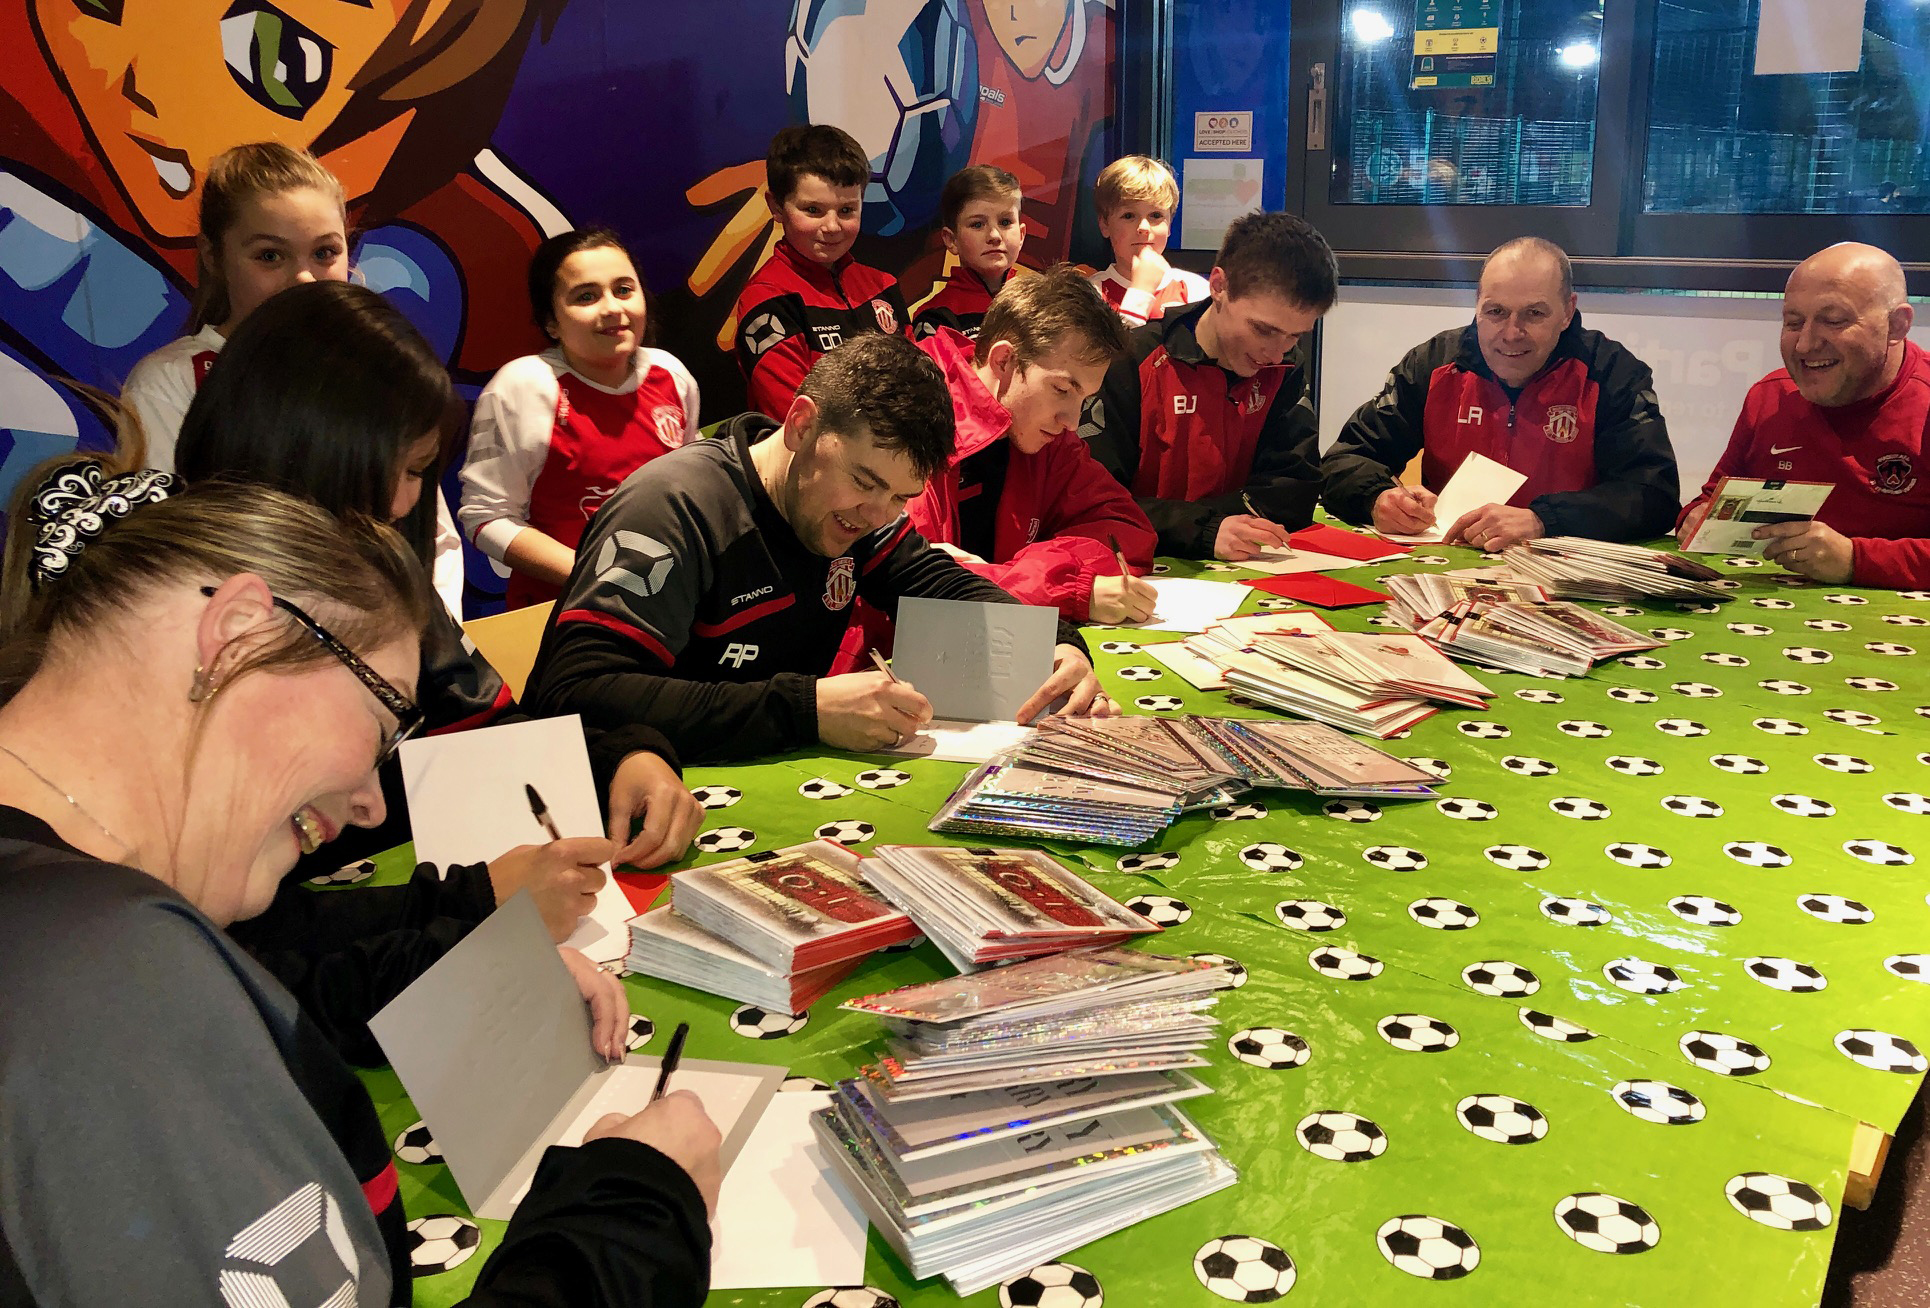 Above: Part of Hallmark's Festive Friday activities last year saw the publisher create a card sending event with local football club,Thackley Juniors involving the players and the coaches.